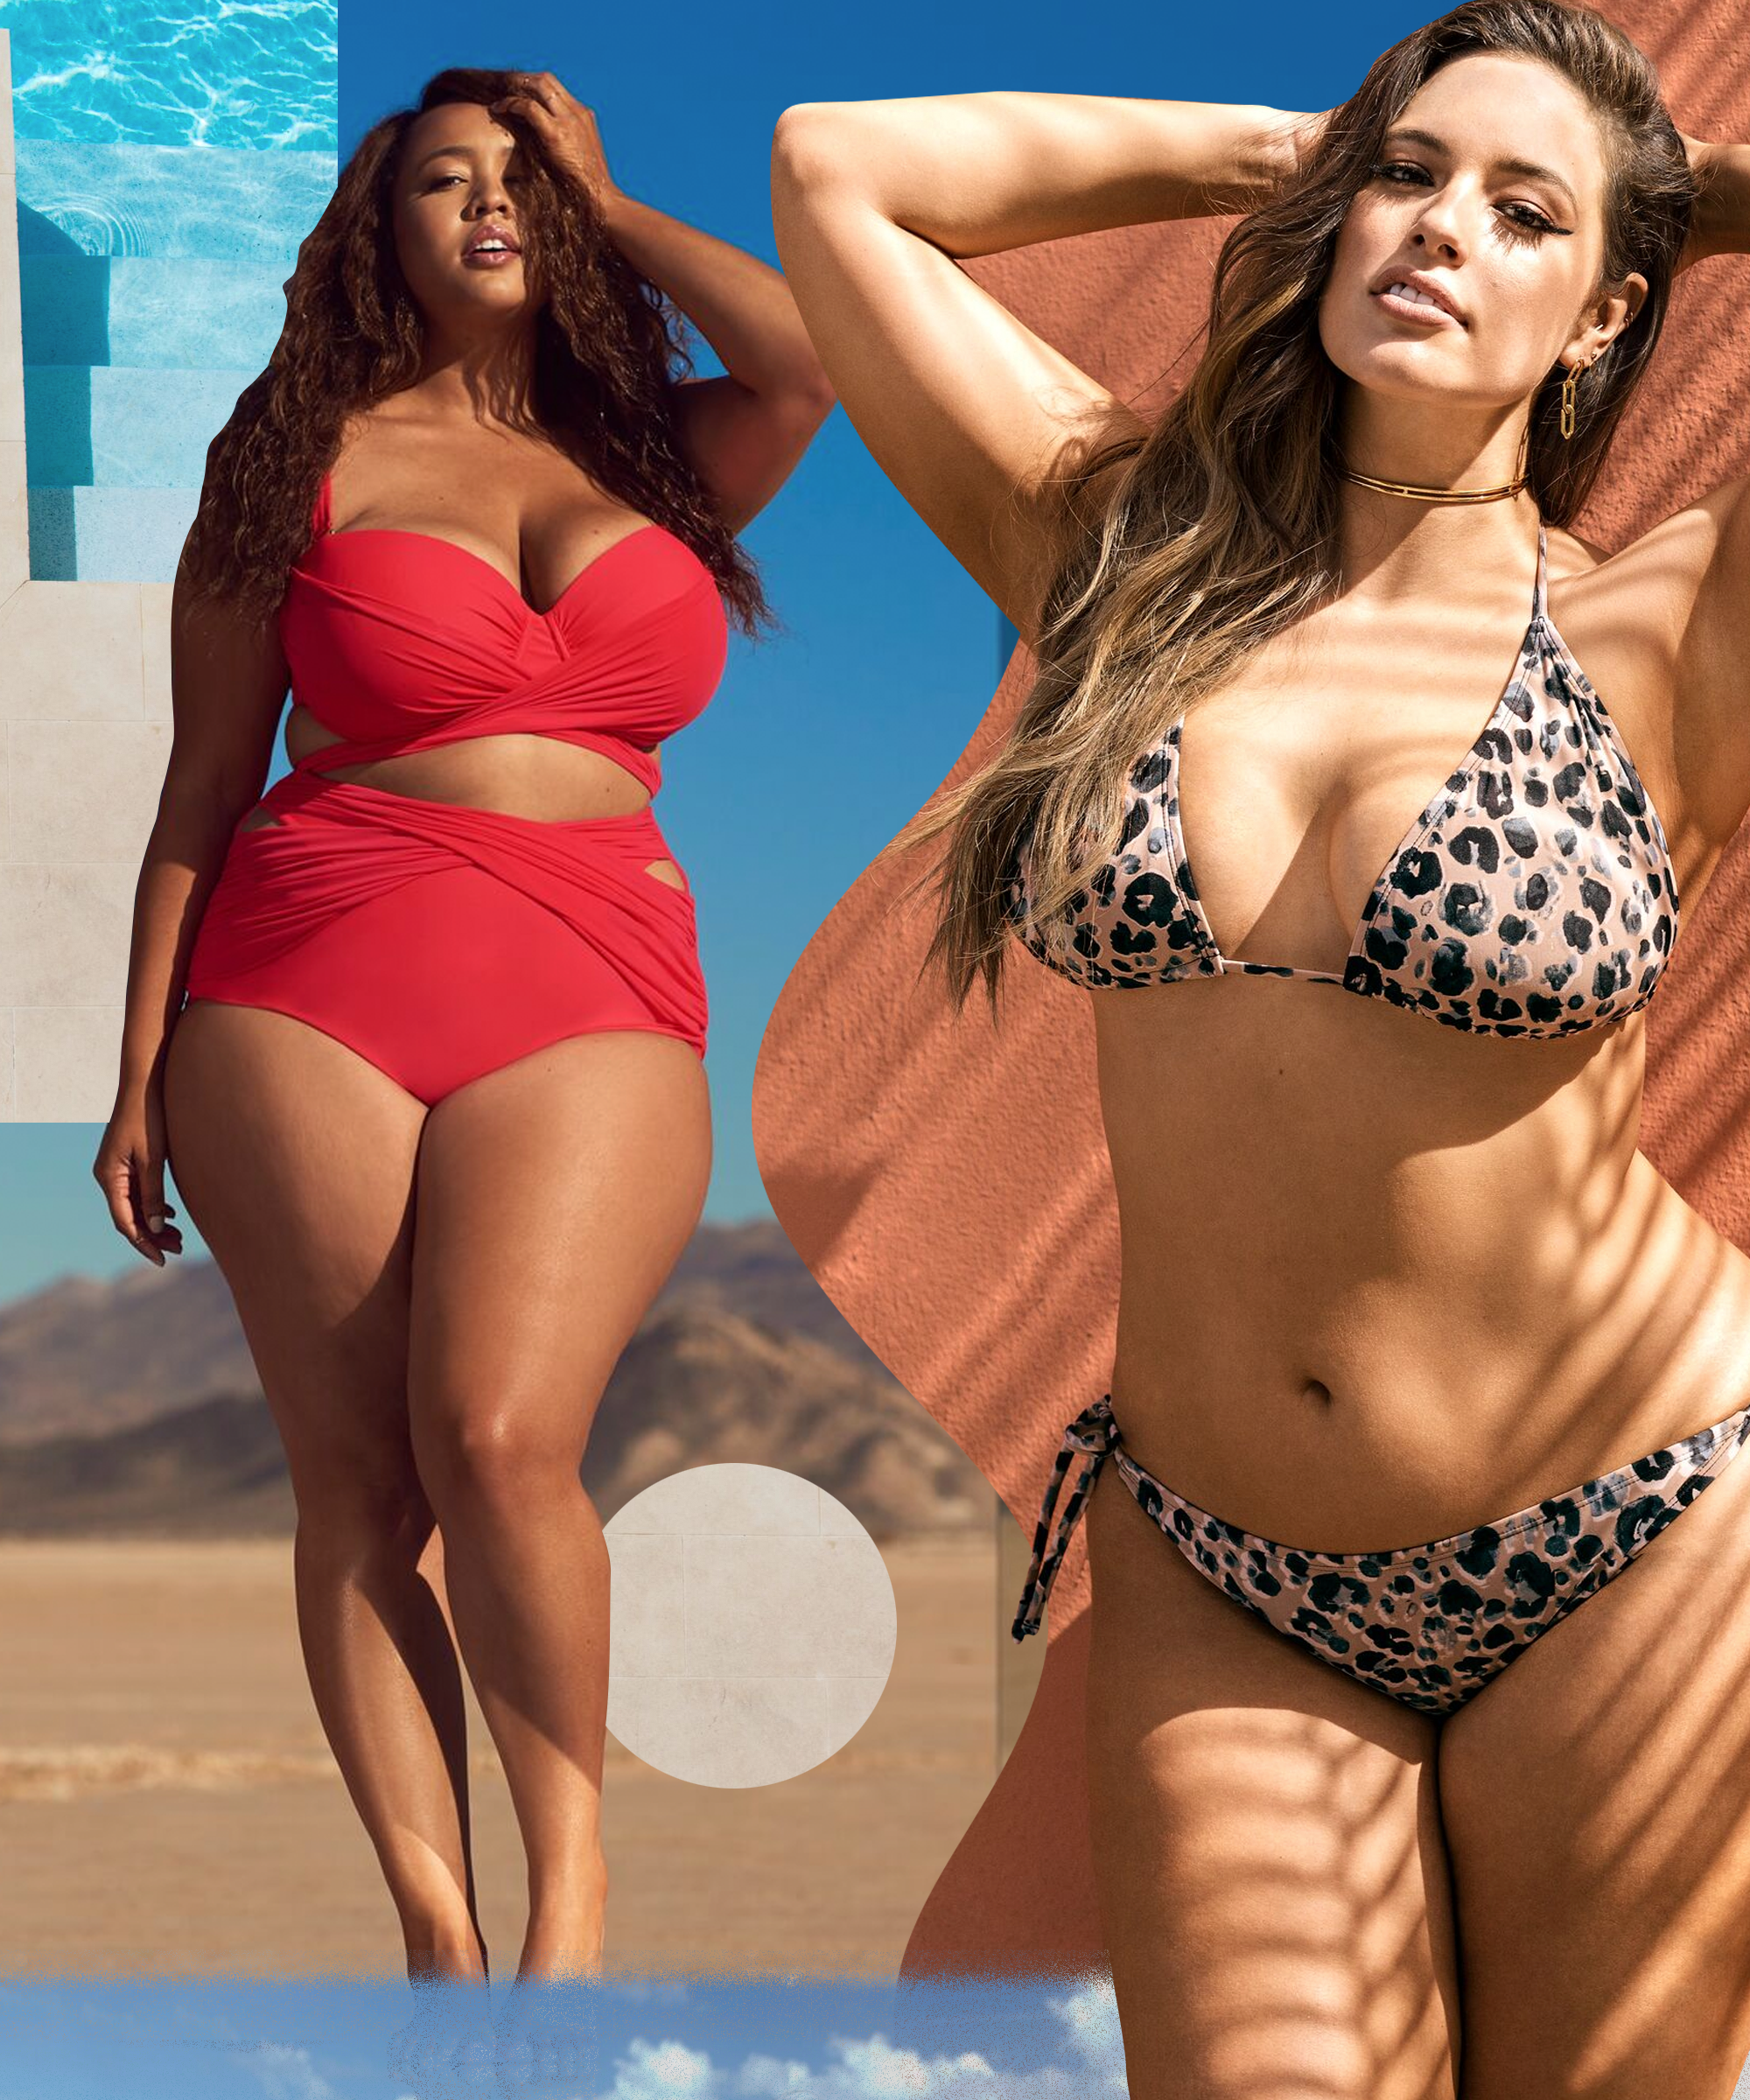 f0f83762f6ea5 How Swimsuits For All Transformed The Bathing Suit Industry